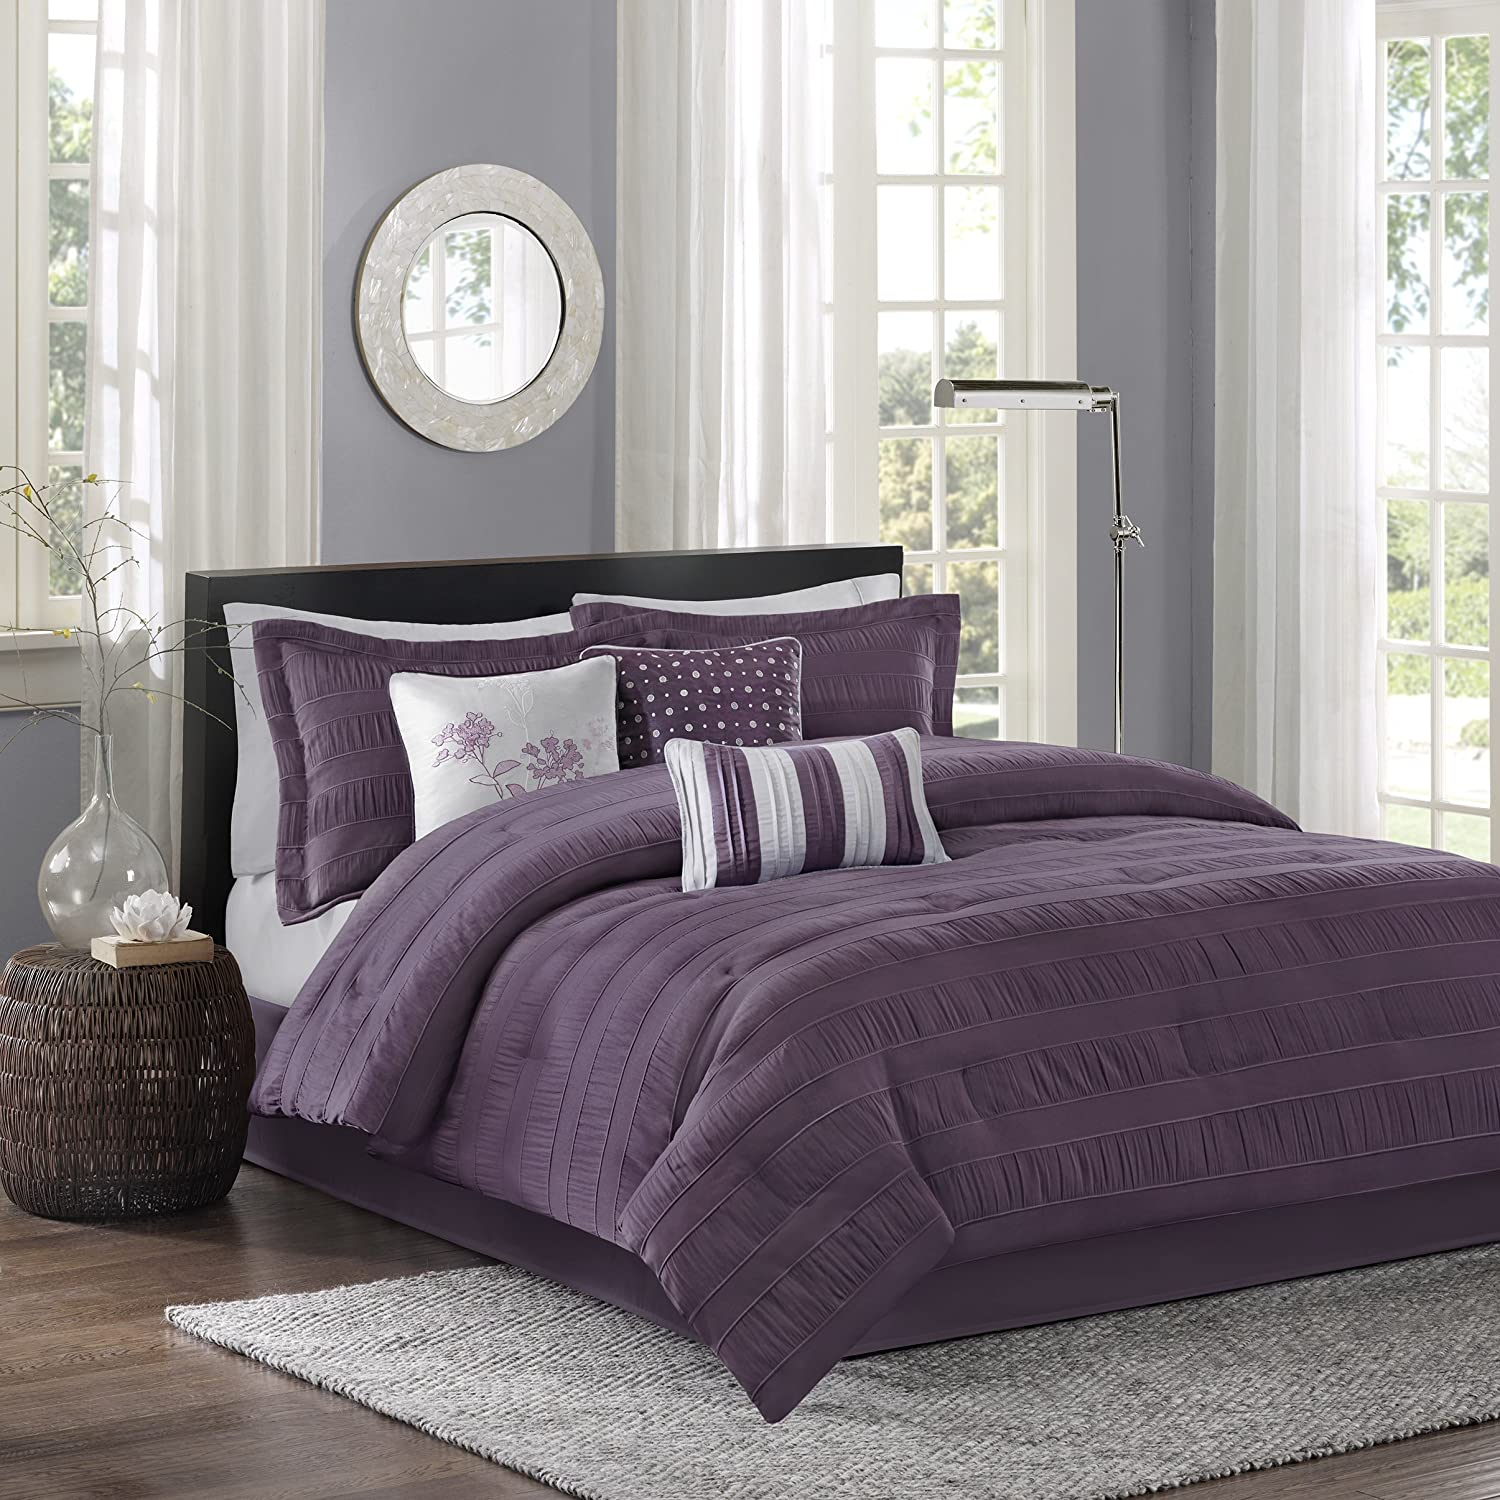 Madison Park Hampton King Size Bed Comforter Set Bed in A Bag - Purple, Jacquard Pleated Stripes – 7 Pieces Bedding Sets – Ultra Soft Microfiber Bedroom Comforters